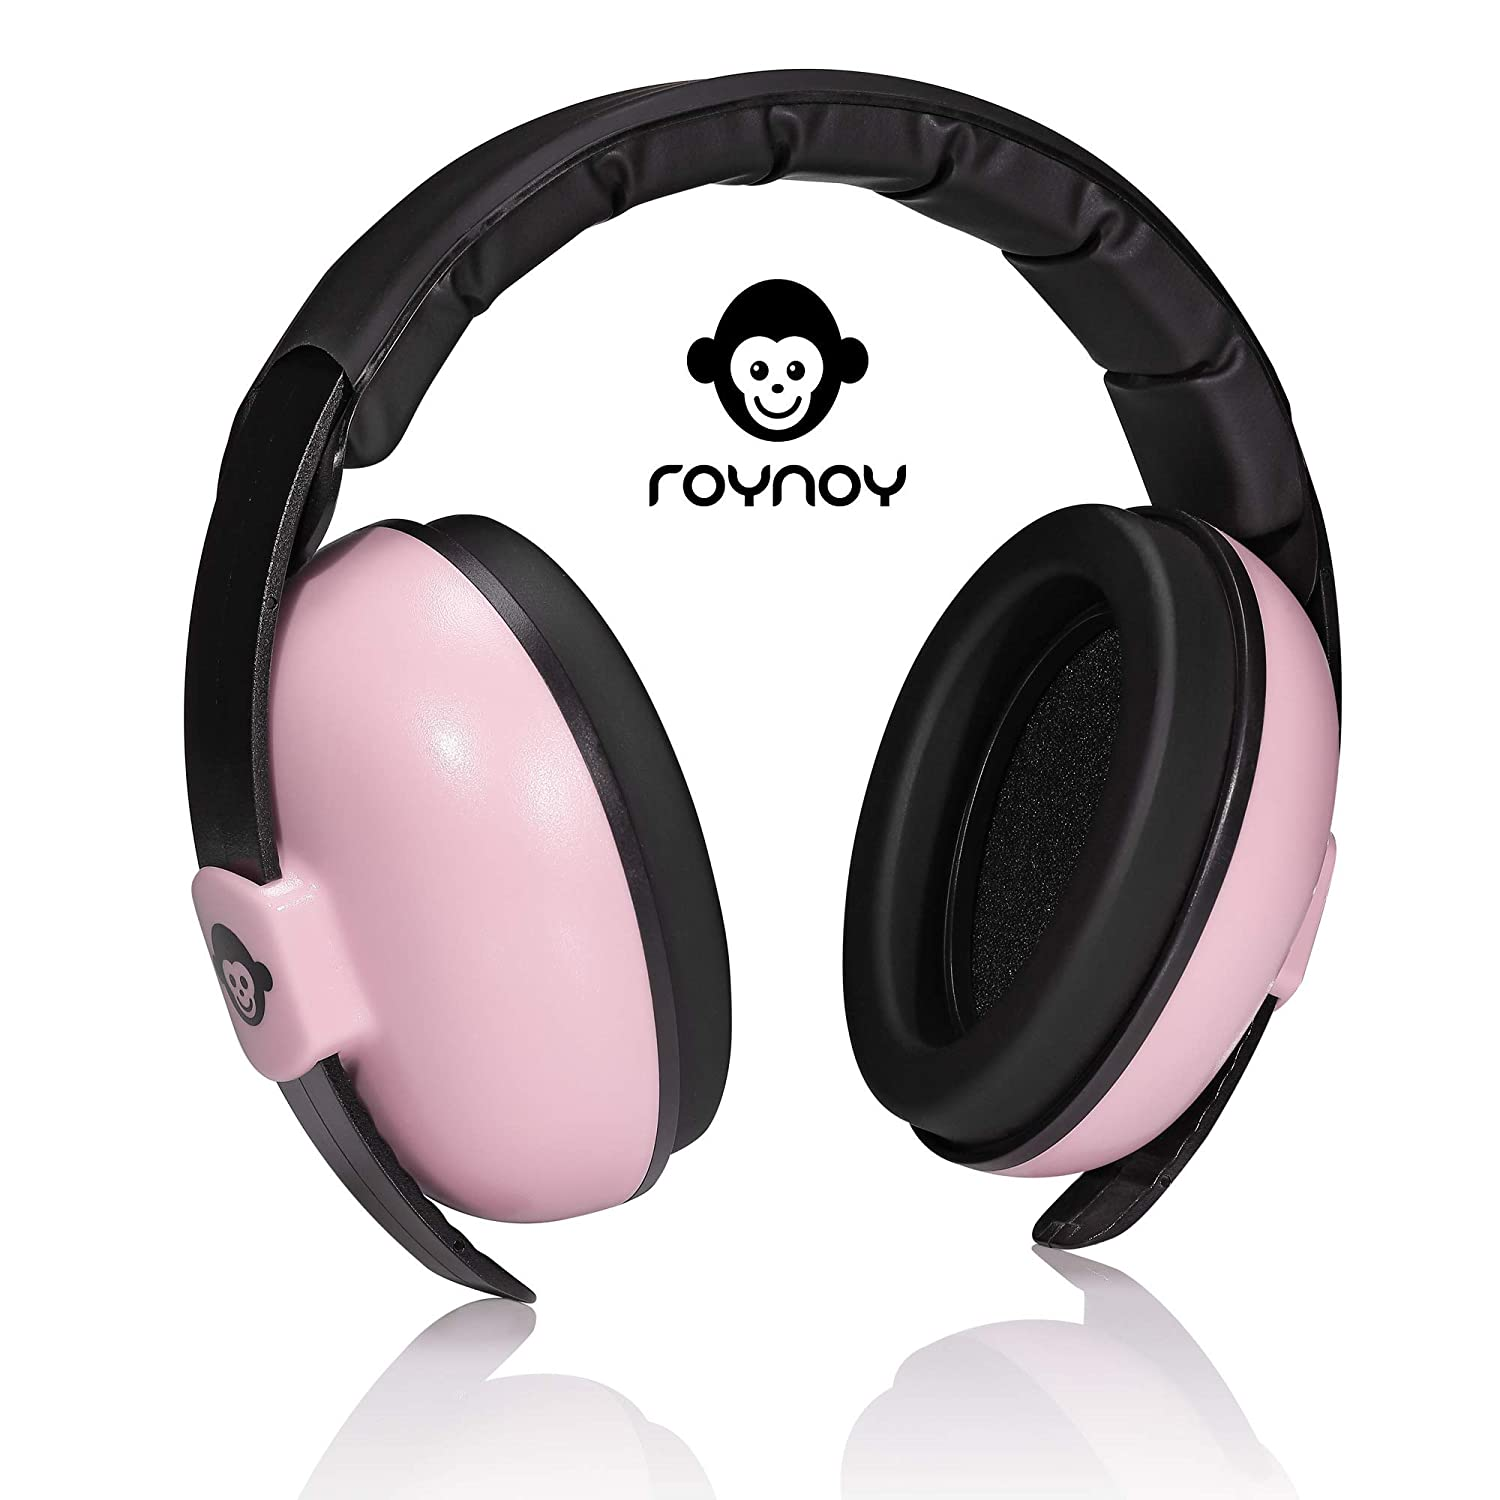 roynoy/-/Hearing Protection Baby 0-2/Years Sounds for Baby/-/Noise Protection Ear Muffs/-/Blue /& Pink